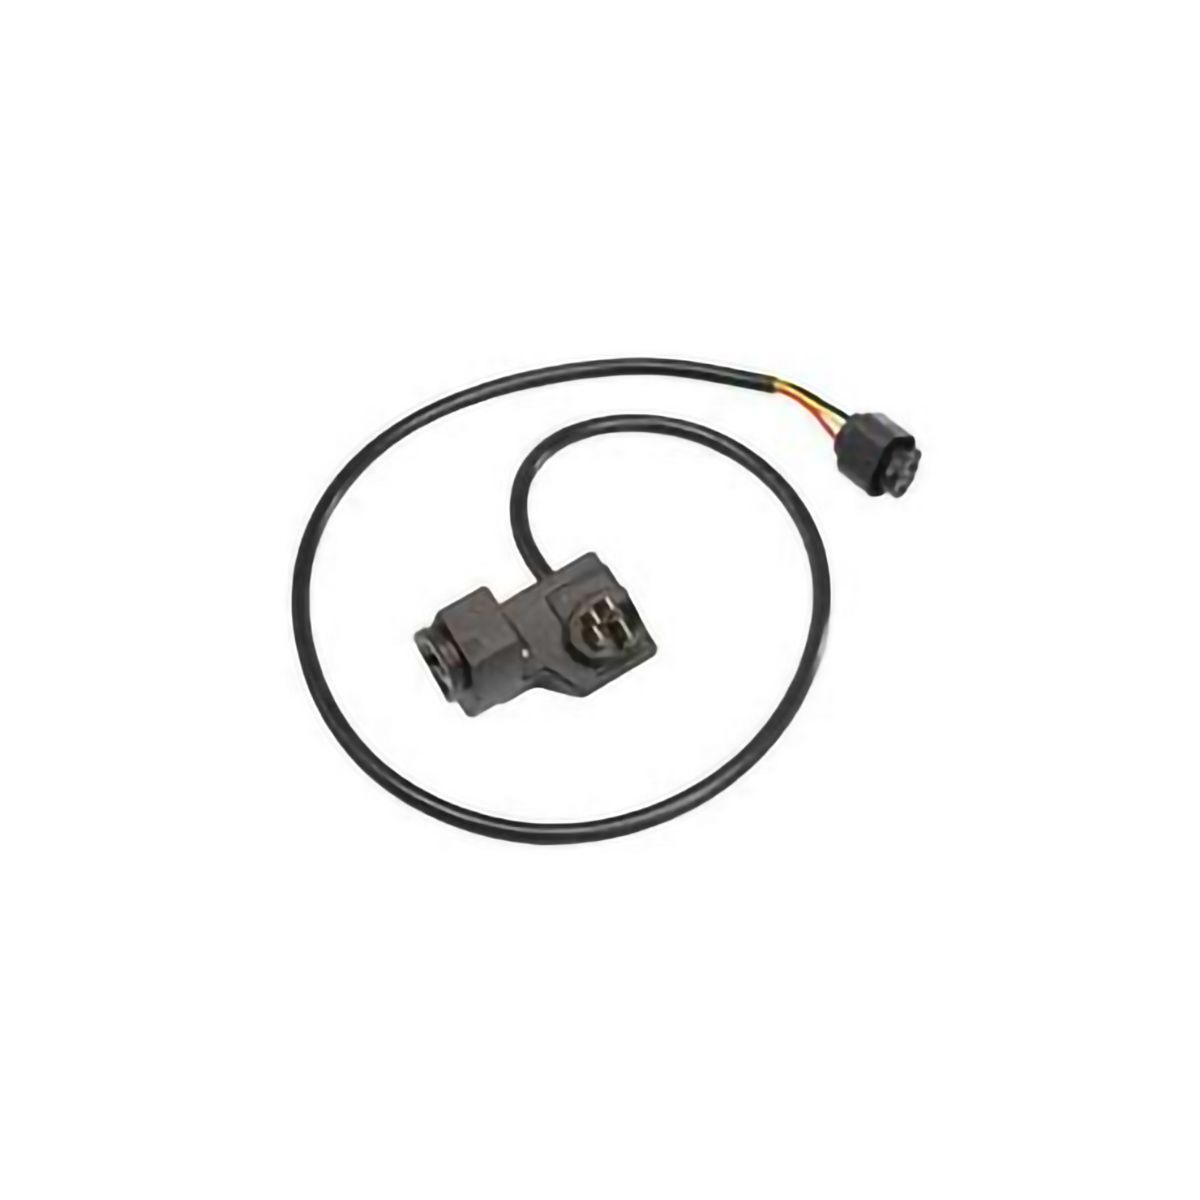 cable for e-bike PowerPack rack-mounted battery